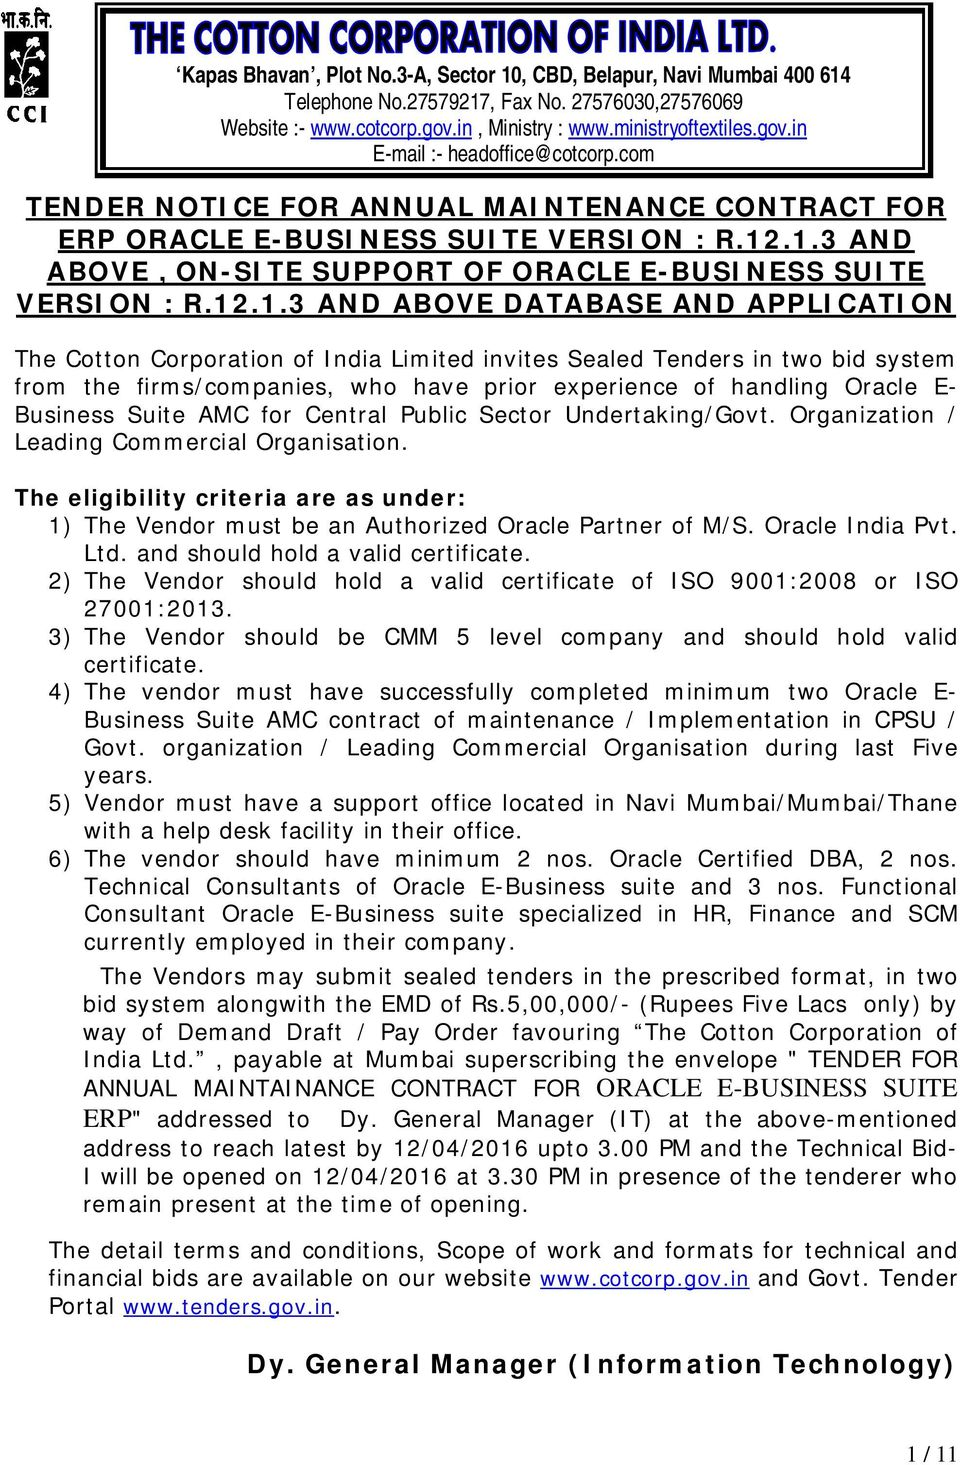 .1.3 AND ABOVE, ON-SITE SUPPORT OF ORACLE E-BUSINESS SUITE VERSION : R.12.1.3 AND ABOVE DATABASE AND APPLICATION The Cotton Corporation of India Limited invites Sealed Tenders in two bid system from